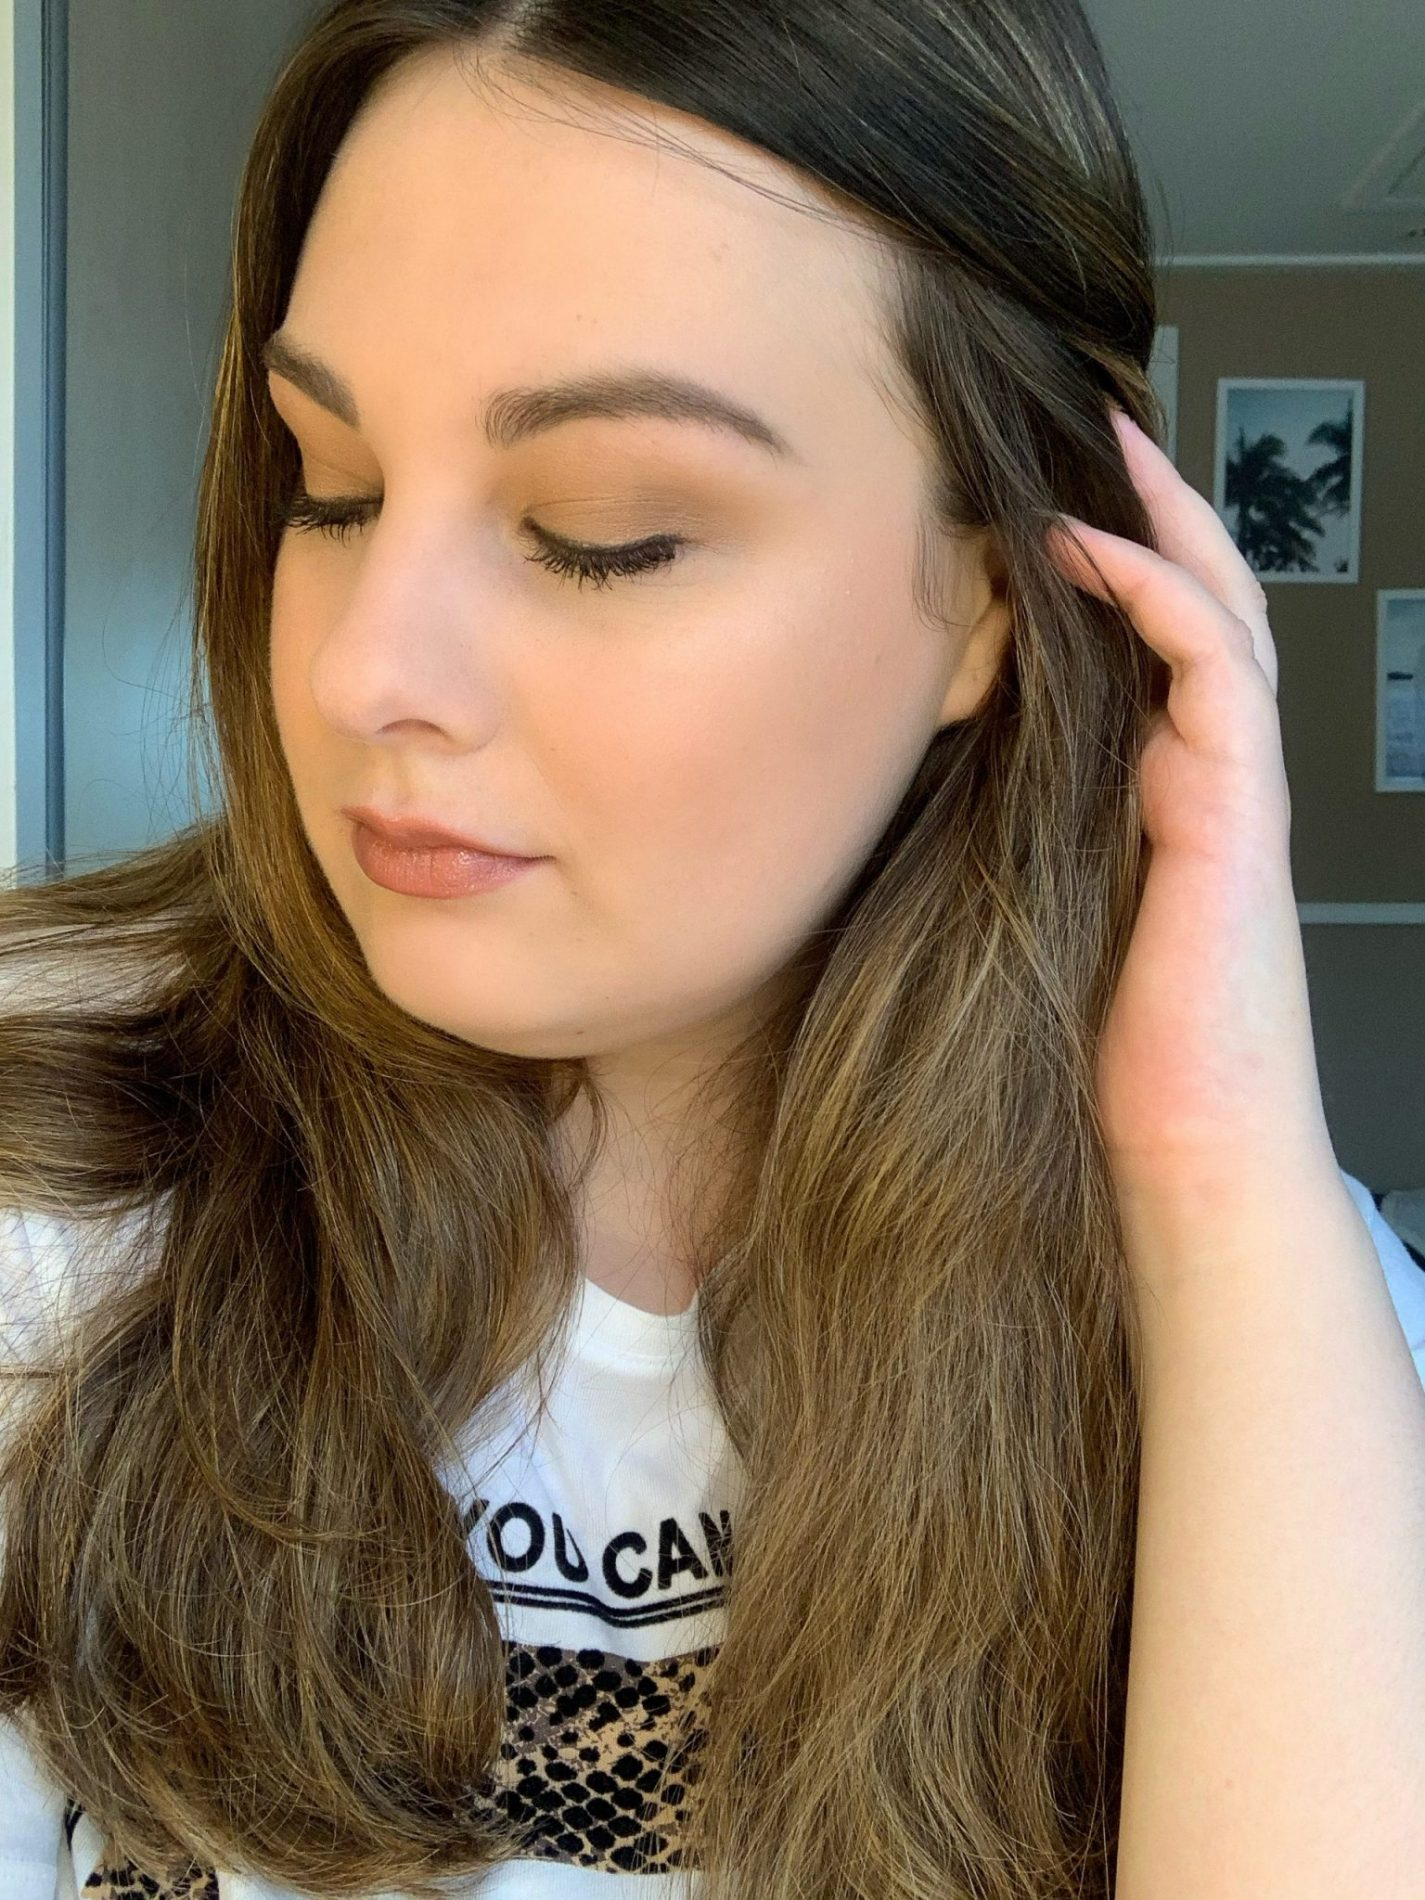 Full Face Using 4 Clean Beauty Brands and Their Products ⋆ Beautymone